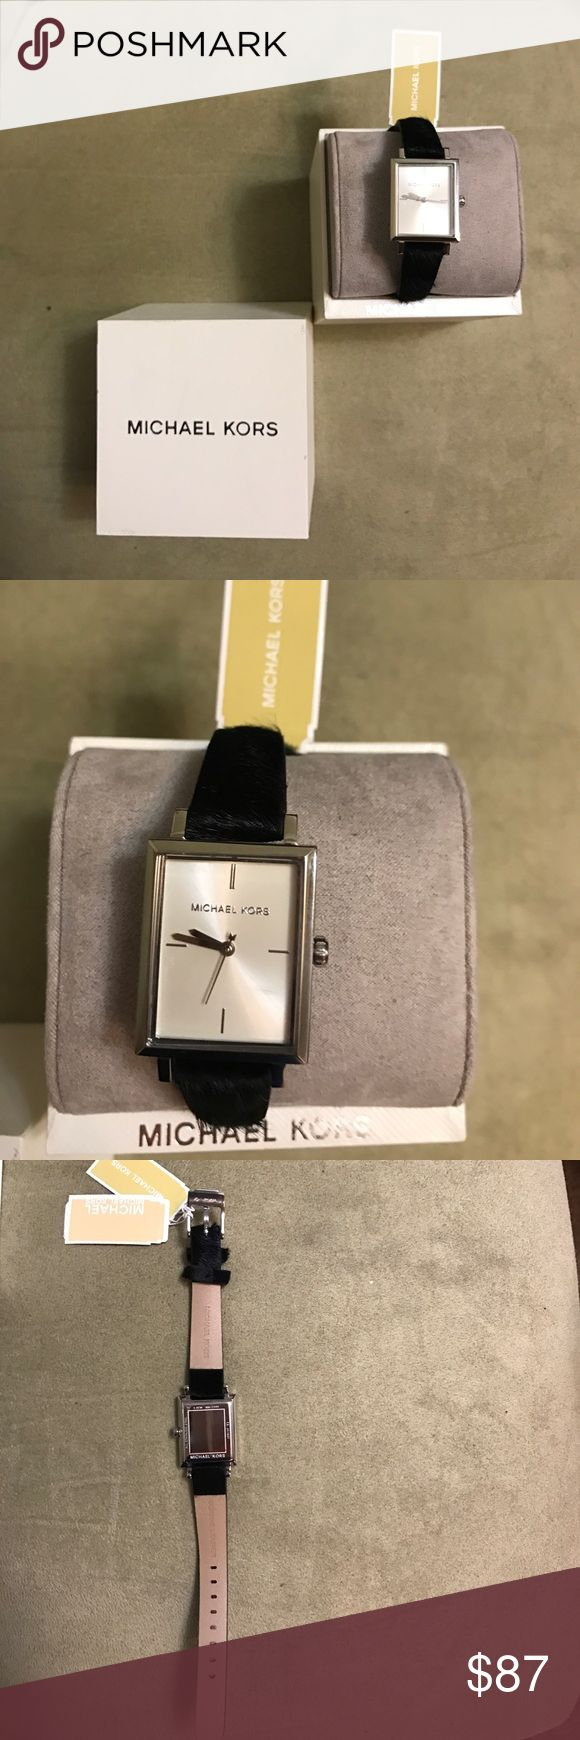 Michael Kors brand new ladies watch Details Stainless steel case with a black calfskin leather strap. Fixed bezel. Silver dial with silver-tone hands and index hour markers. Dial Type: Analog. Quartz movement. Scratch resistant mineral crystal. Pull / push crown. Solid case back. Case size: 24 mm. Case thickness: 8 mm. Square case shape. Buckle clasp. Water resistant at 50 meters / 165 feet. Functions: hour, minute, second. Casual watch style. Michael Kors Harway Silver Dial Ladies Watch…